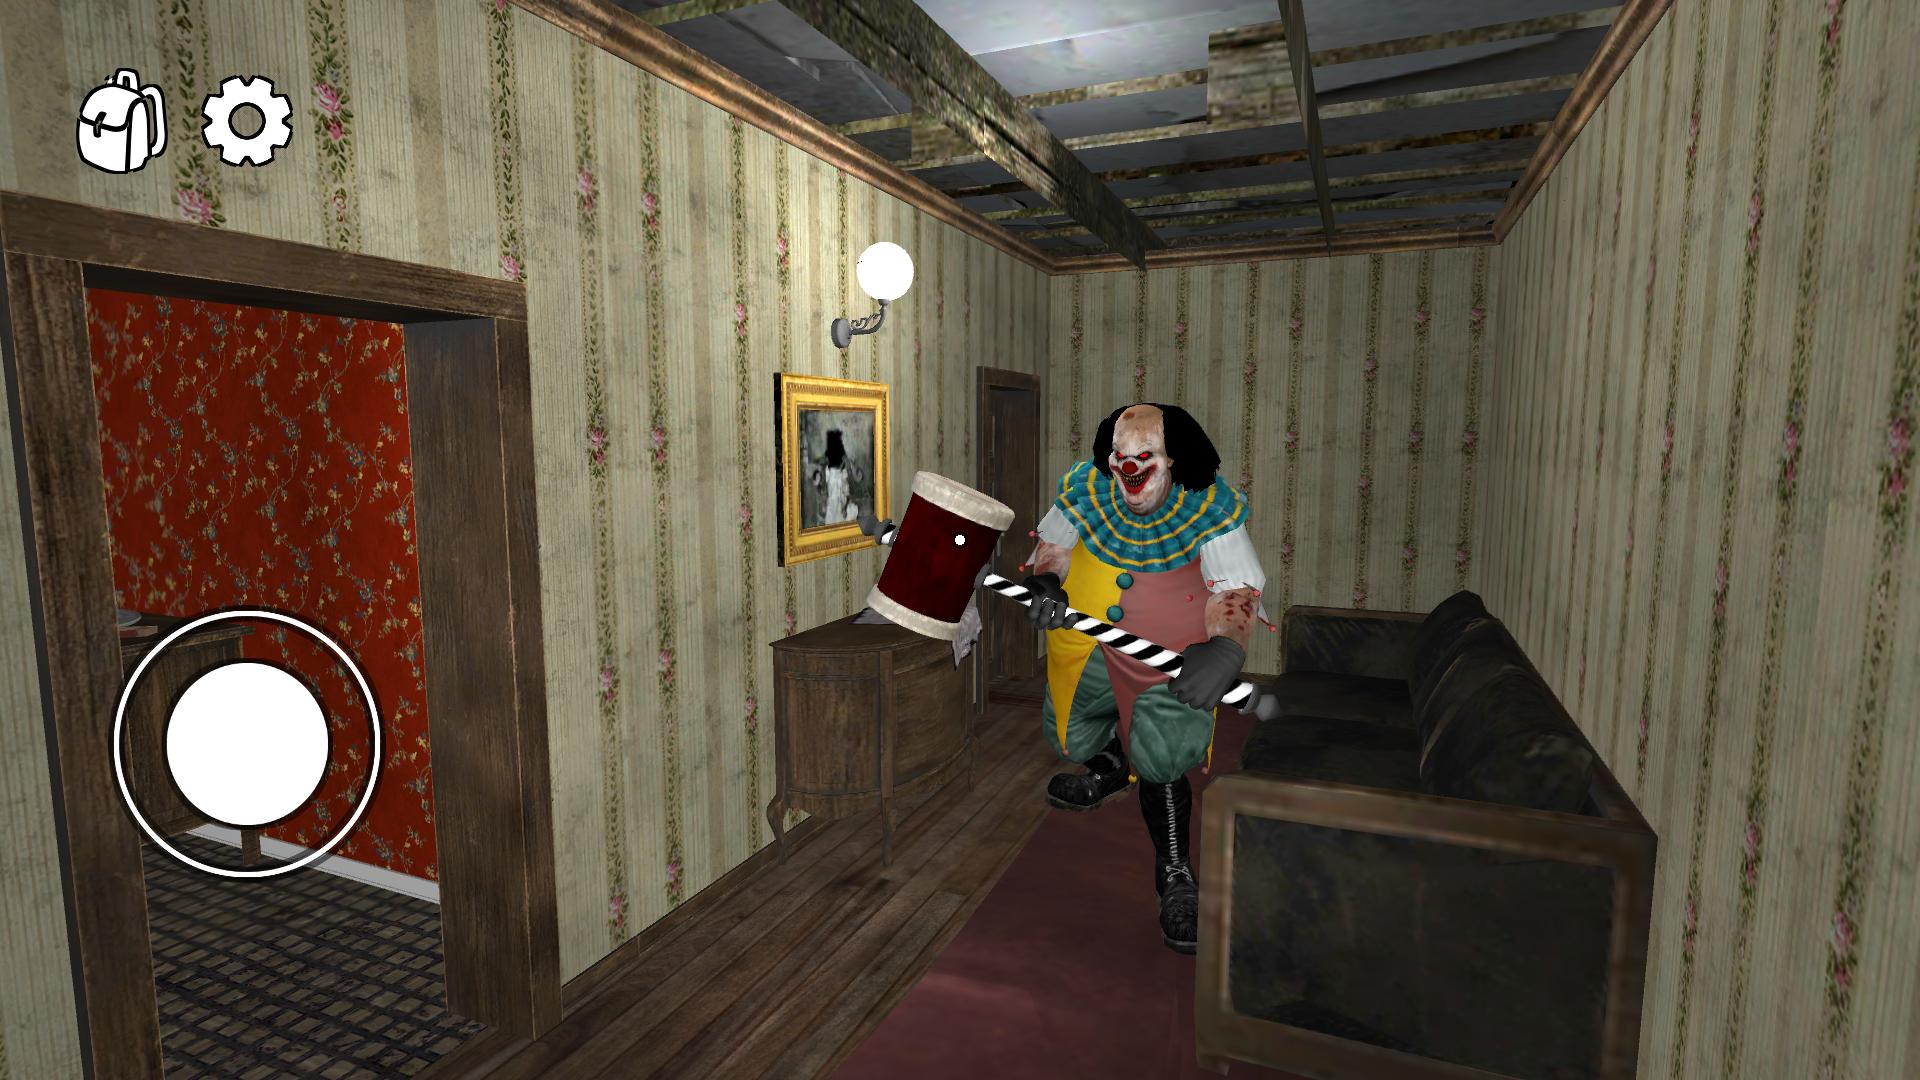 Horror Clown Pennywise - Scary Escape Game for Android - APK